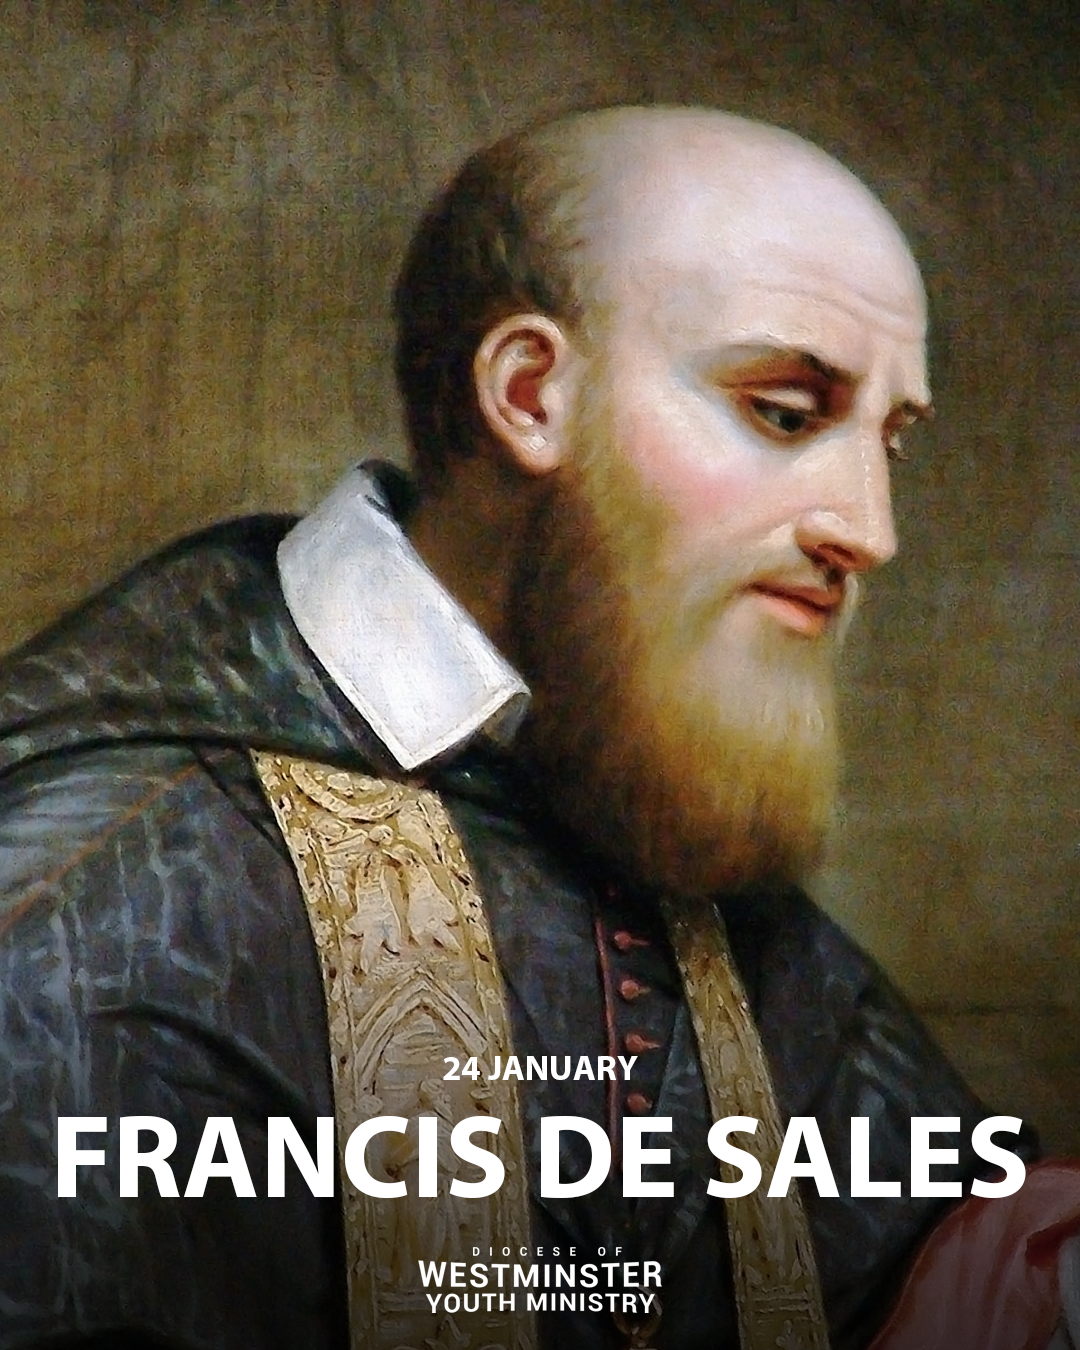 Saint Francis de Sales, evangelist, spiritual writer and Doctor of the Church, pray for us!